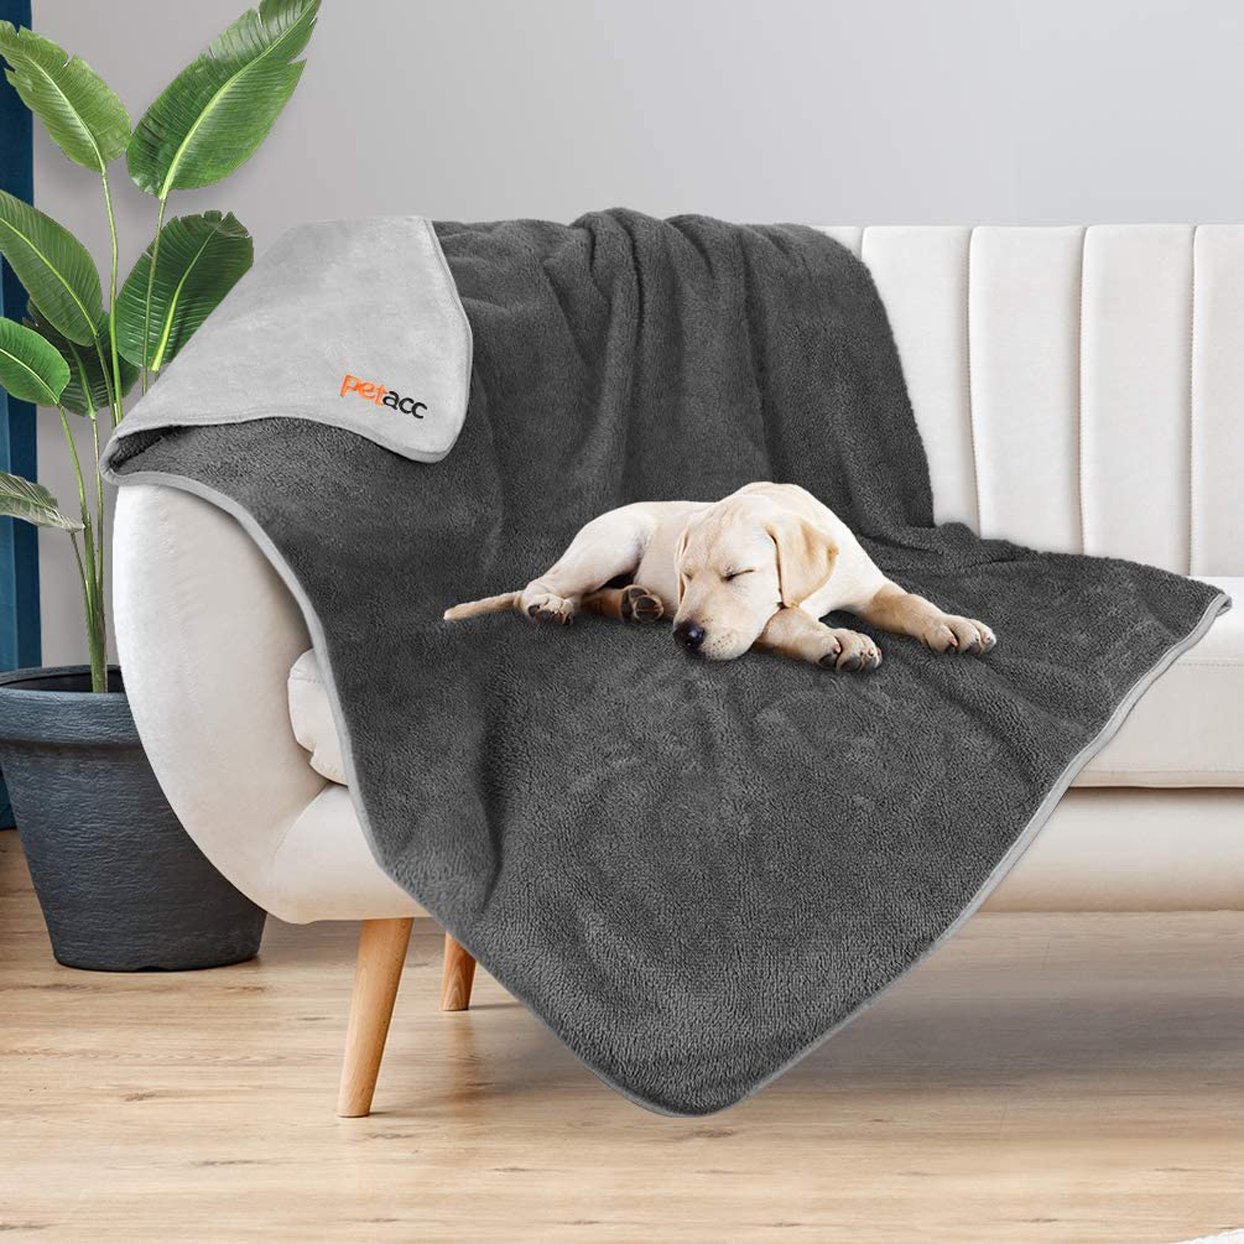 petacc-waterproof-dog-blanket